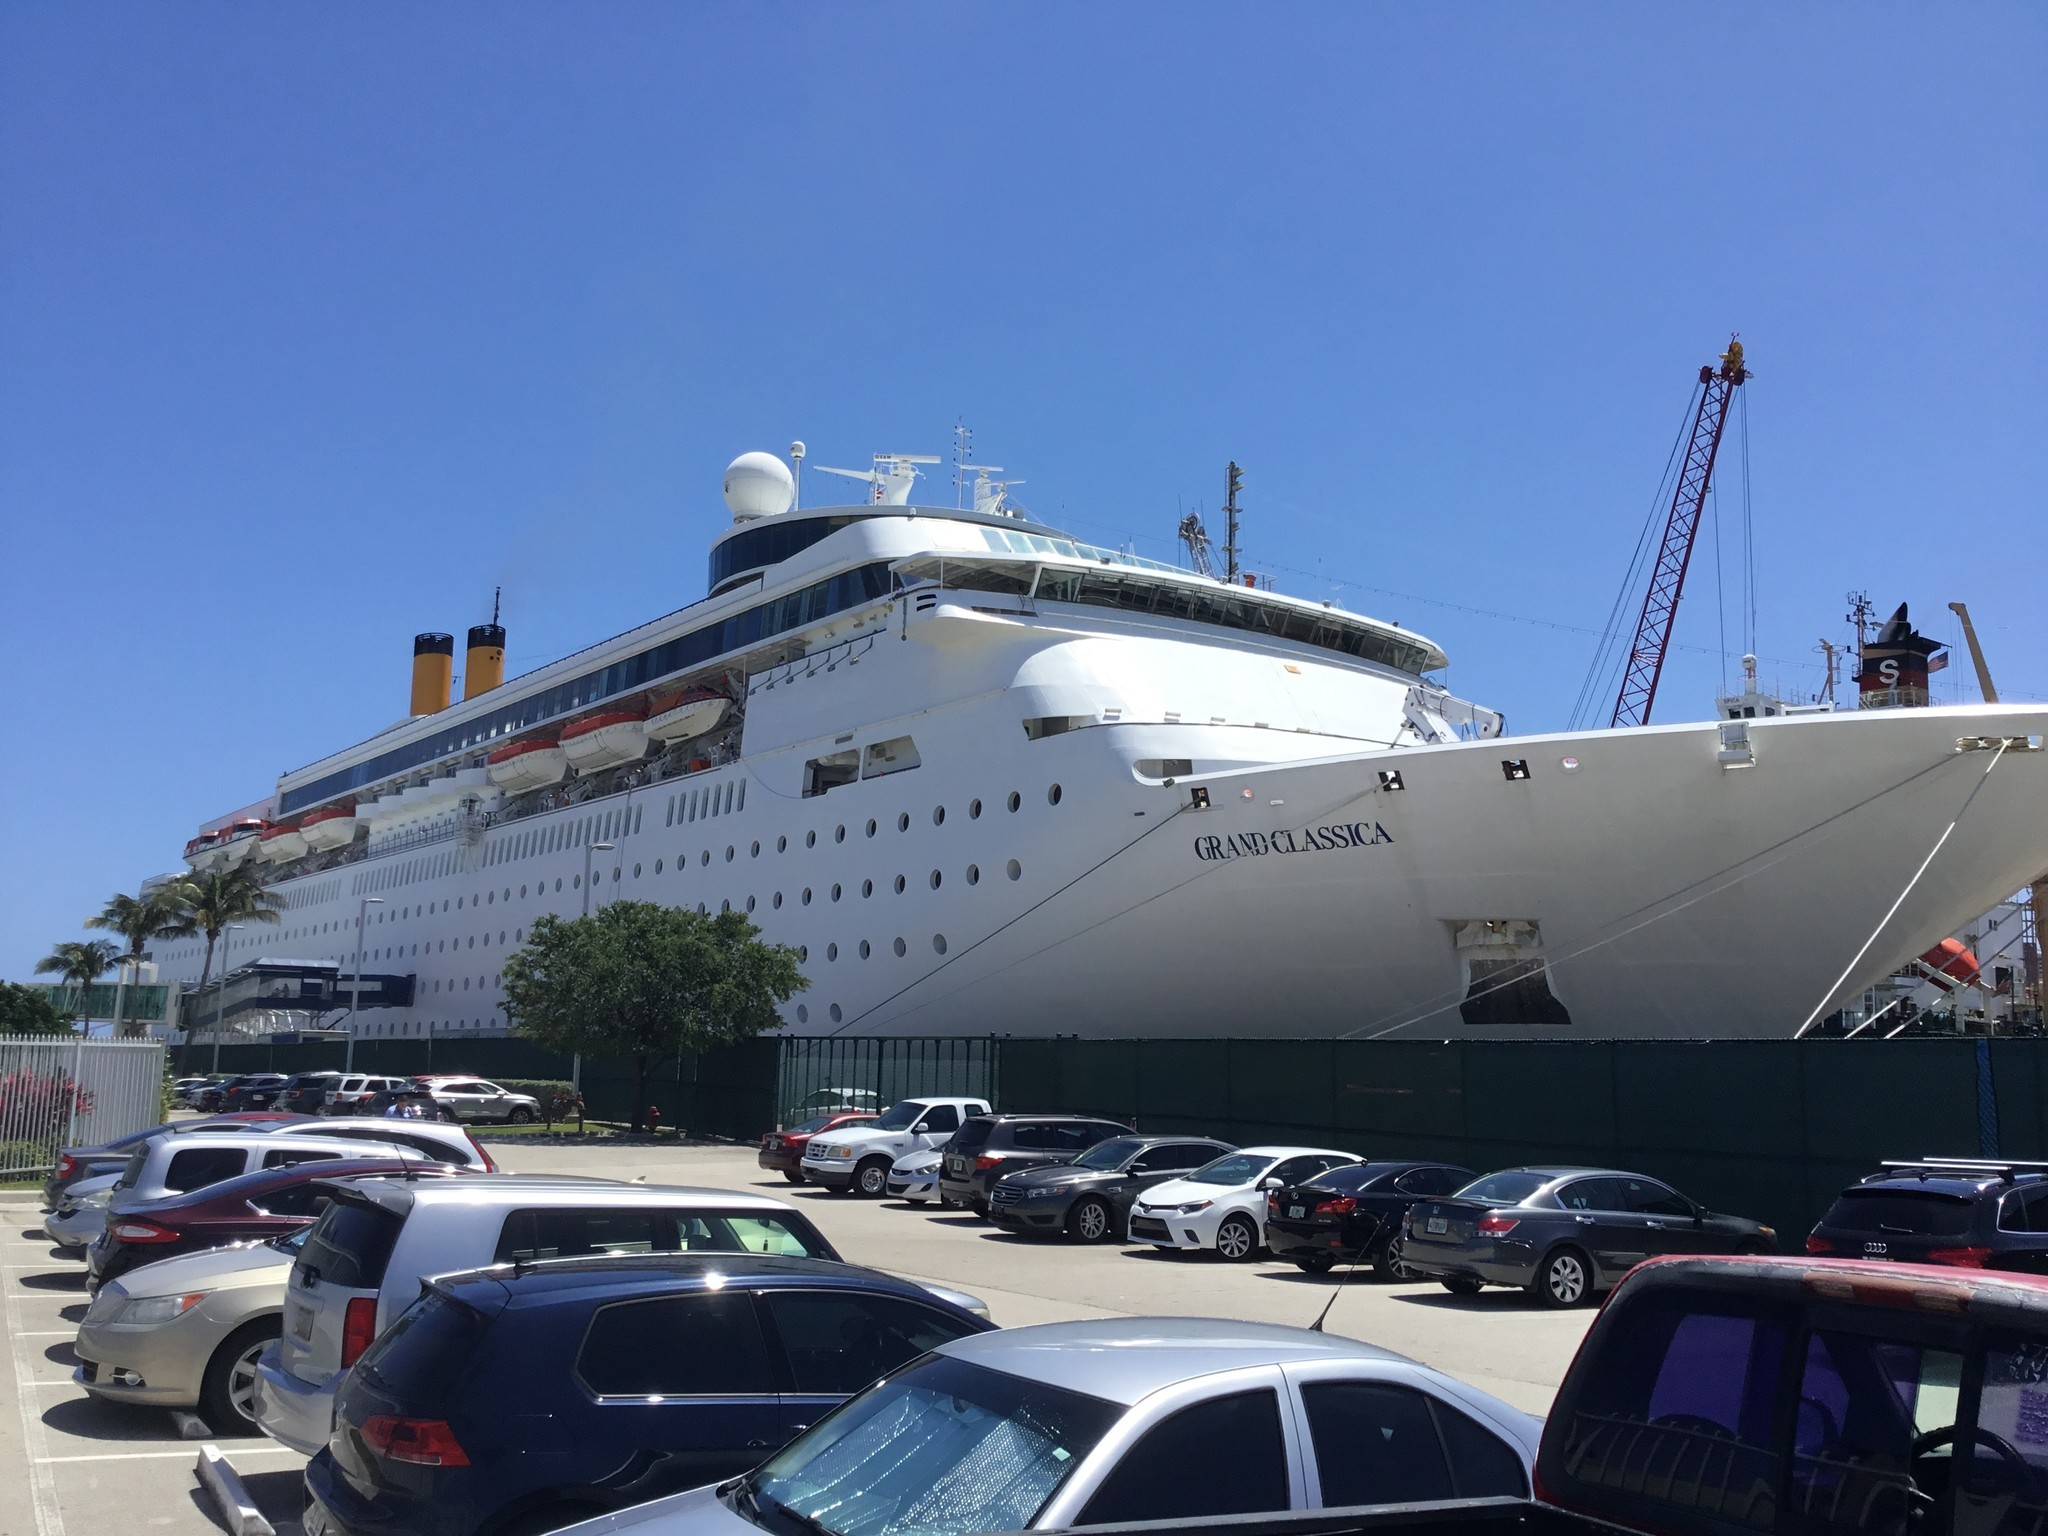 Check Out The Grand Classica Bahamas Paradise Cruise